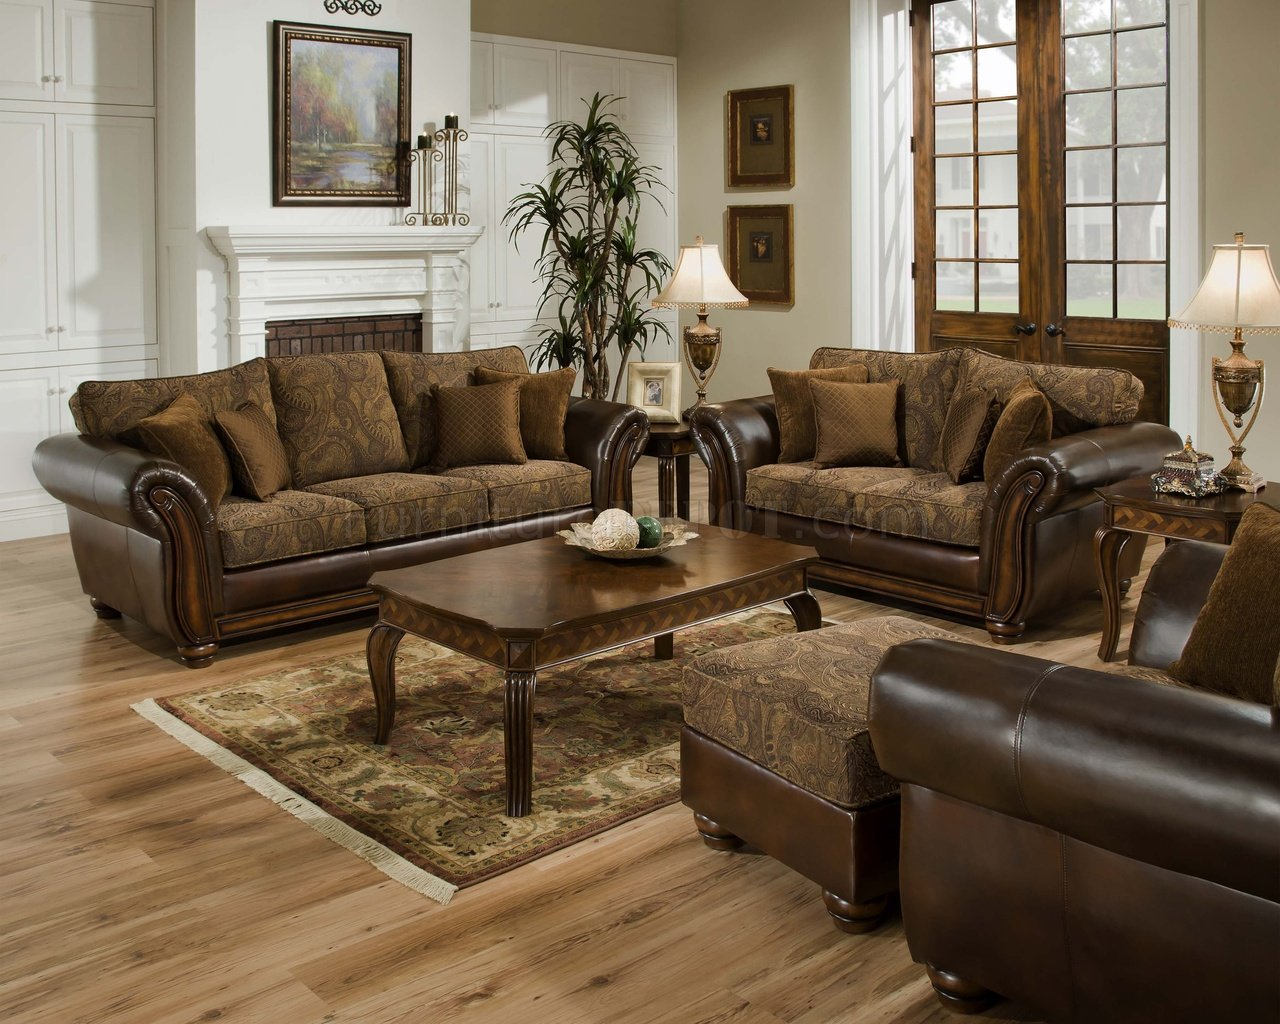 Awesome leather sofa and loveseat vintage chenille sofa u0026 loveseat set w/brown bonded leather base mnyukrz